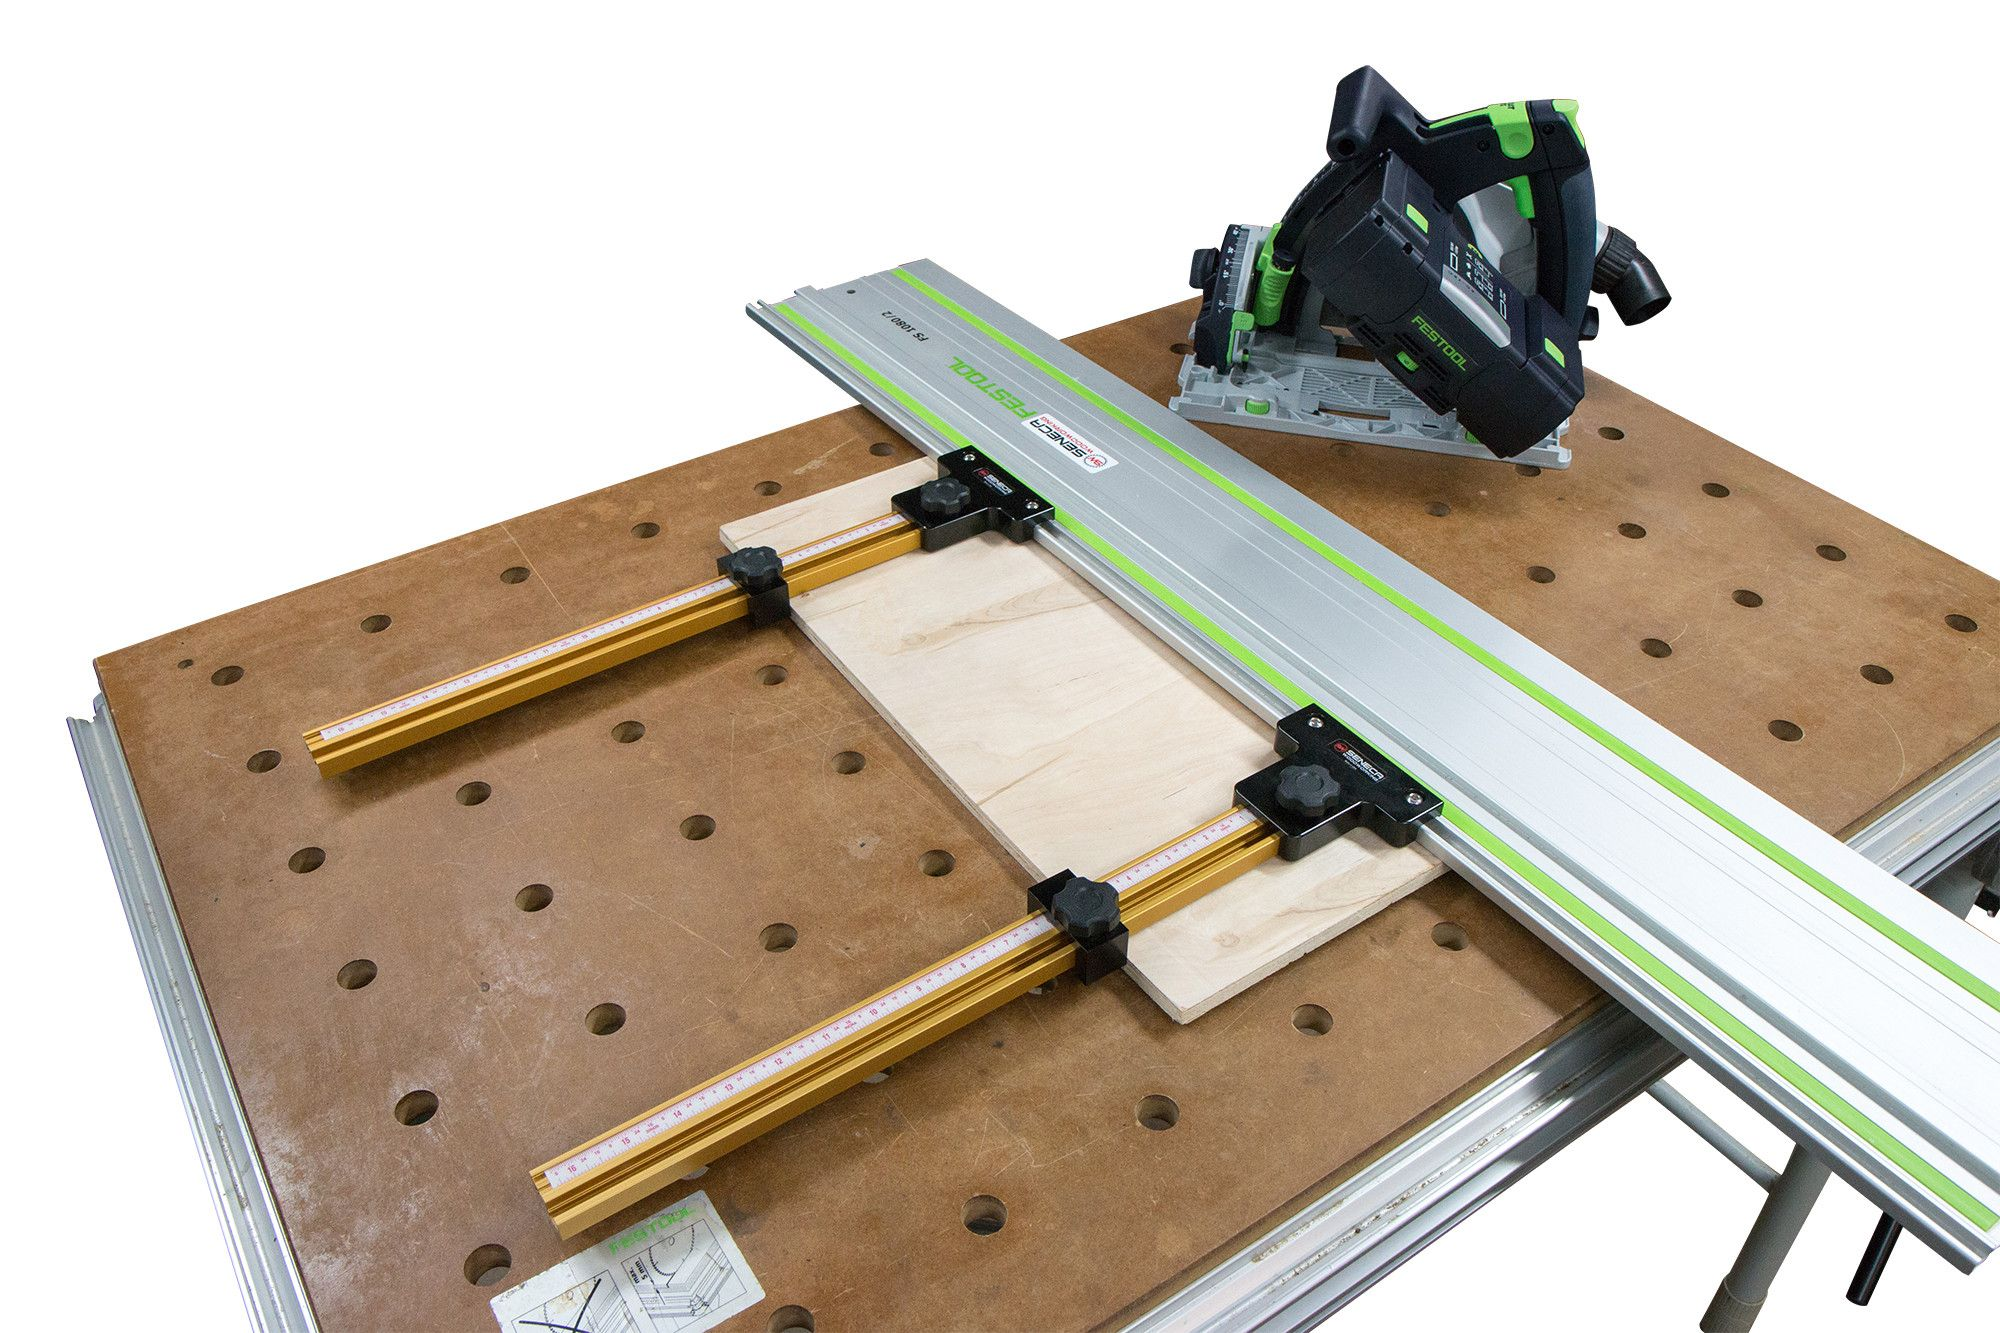 Parallel Guide System For Festool And Makita Track Saw Guide Rail With Incra T Track Guide System Festool Woodworking